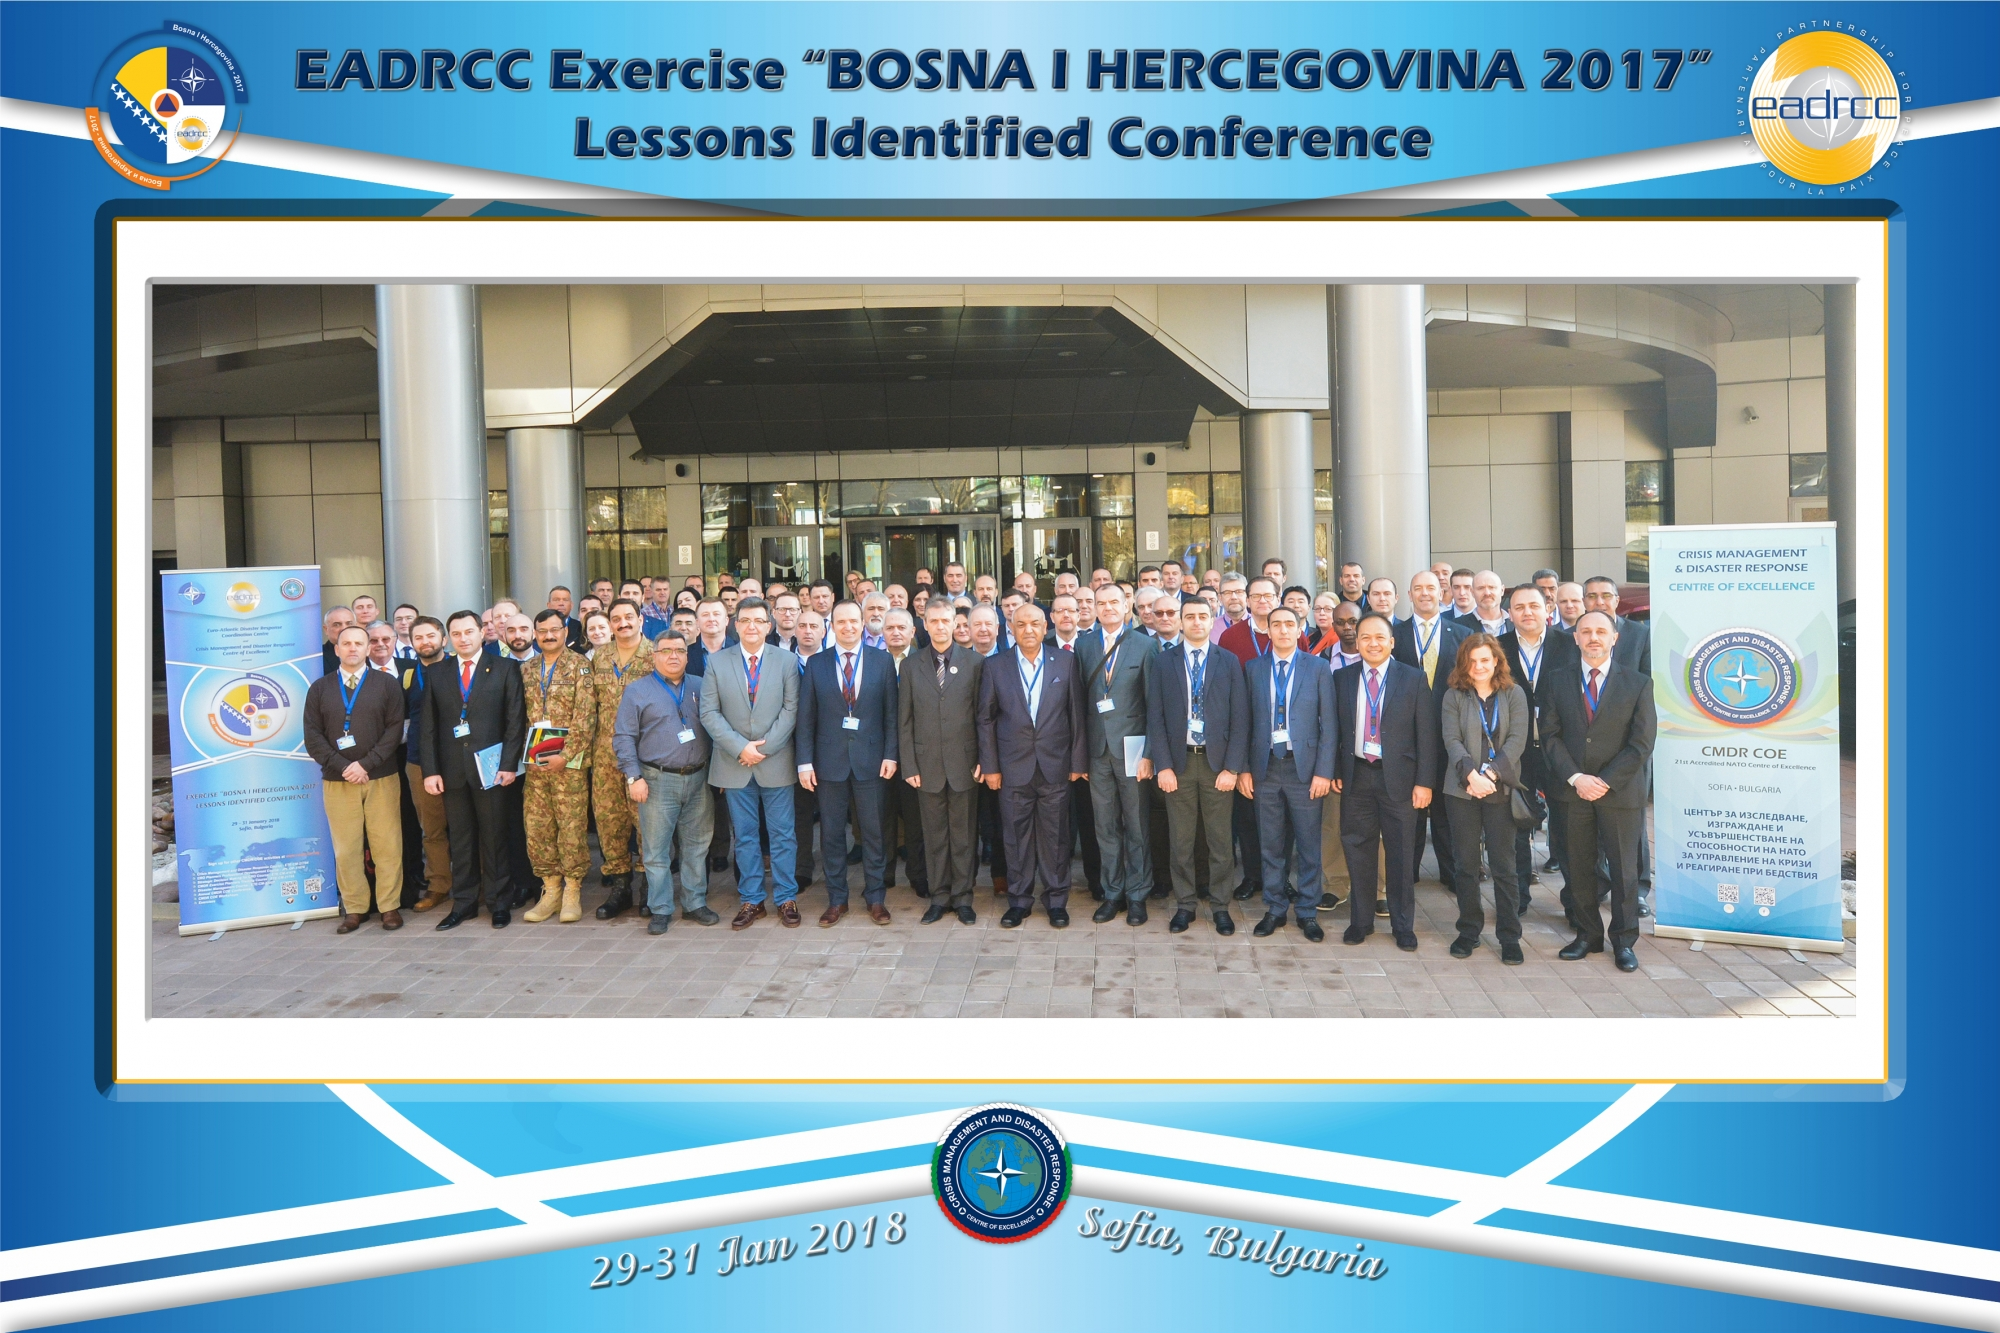 """BOSNA I HERCEGOVINA 2017"" Lessons Identified Conference opens today"